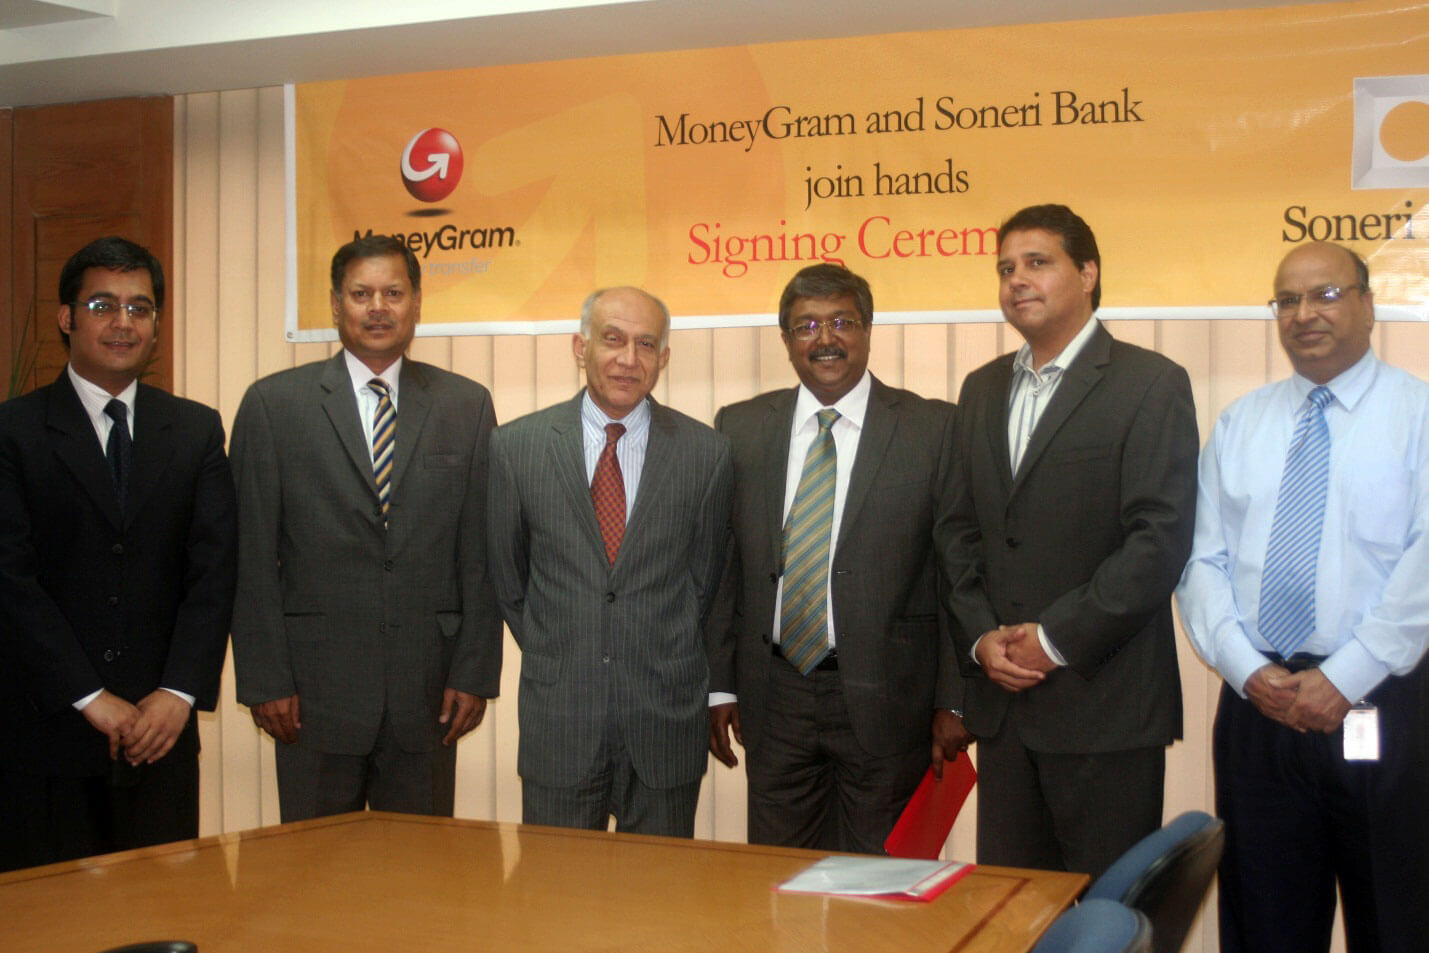 Soneri Bank Limited Has Joined Hands With Moneygram